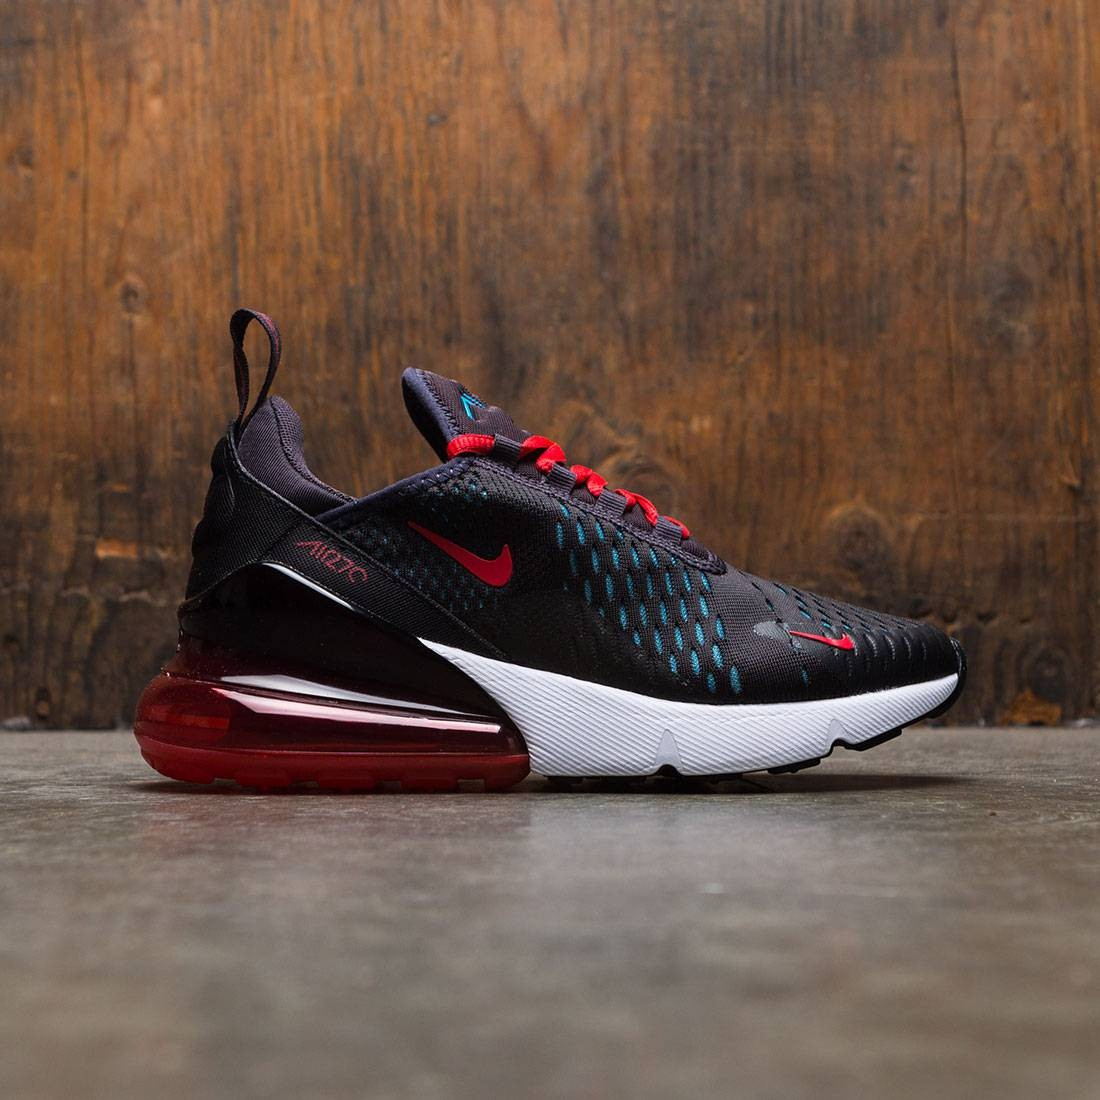 Nike Women Air Max 270 (oil grey / speed red,neo turq,black)